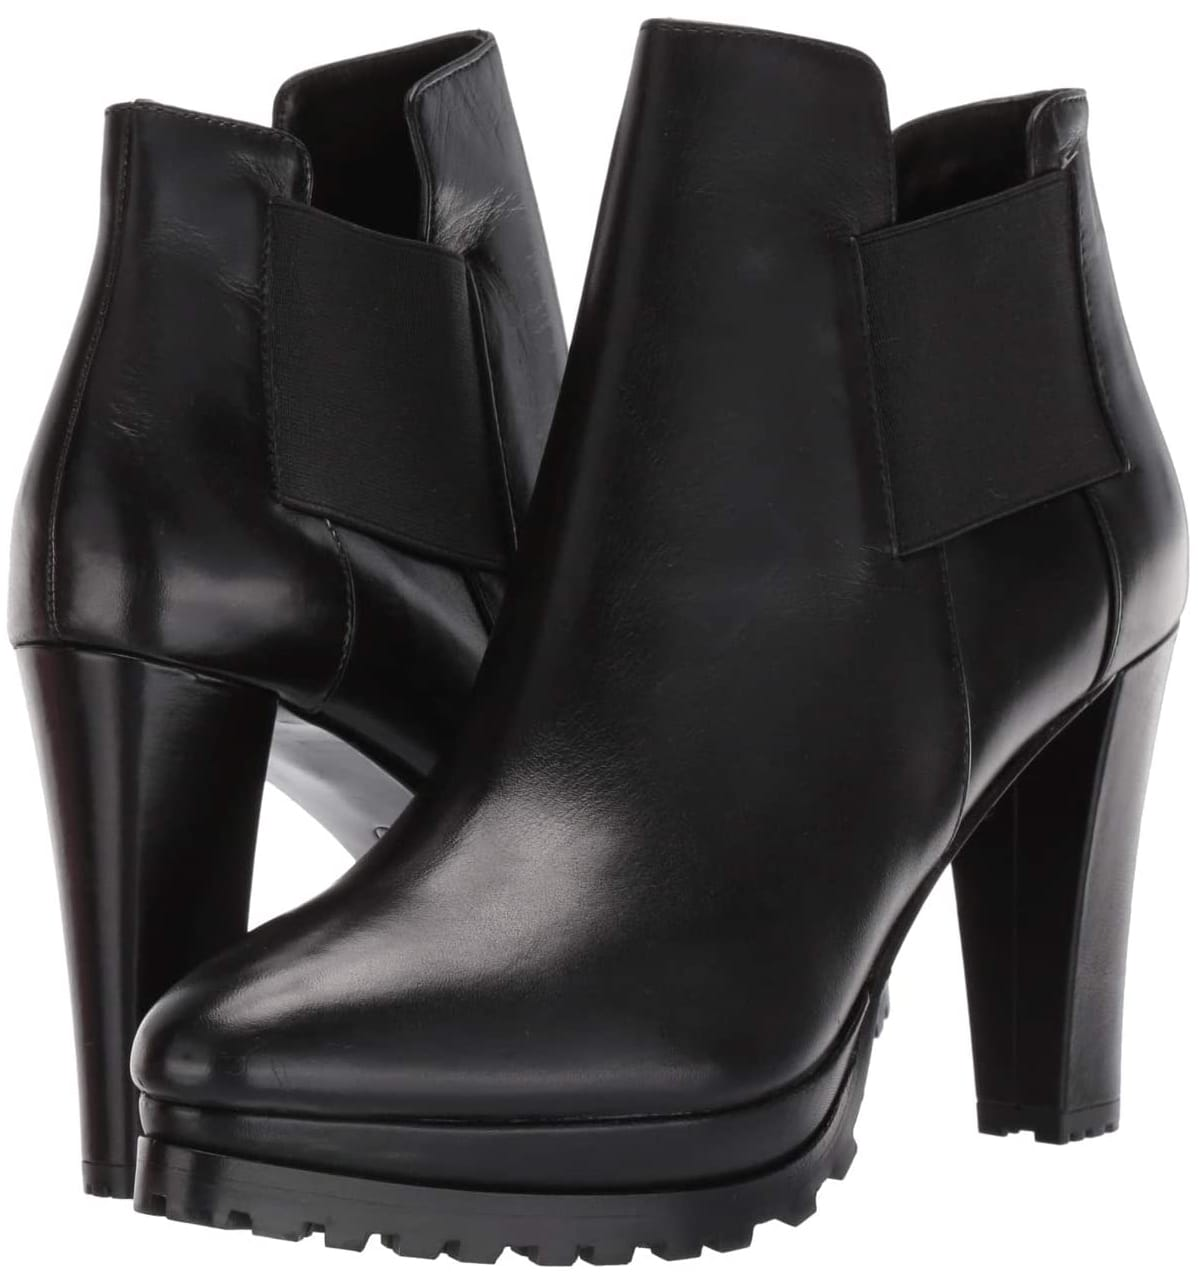 These leather boots feature a chunky high heel in a Chelsea silhouette with a pull-on design with dual goring